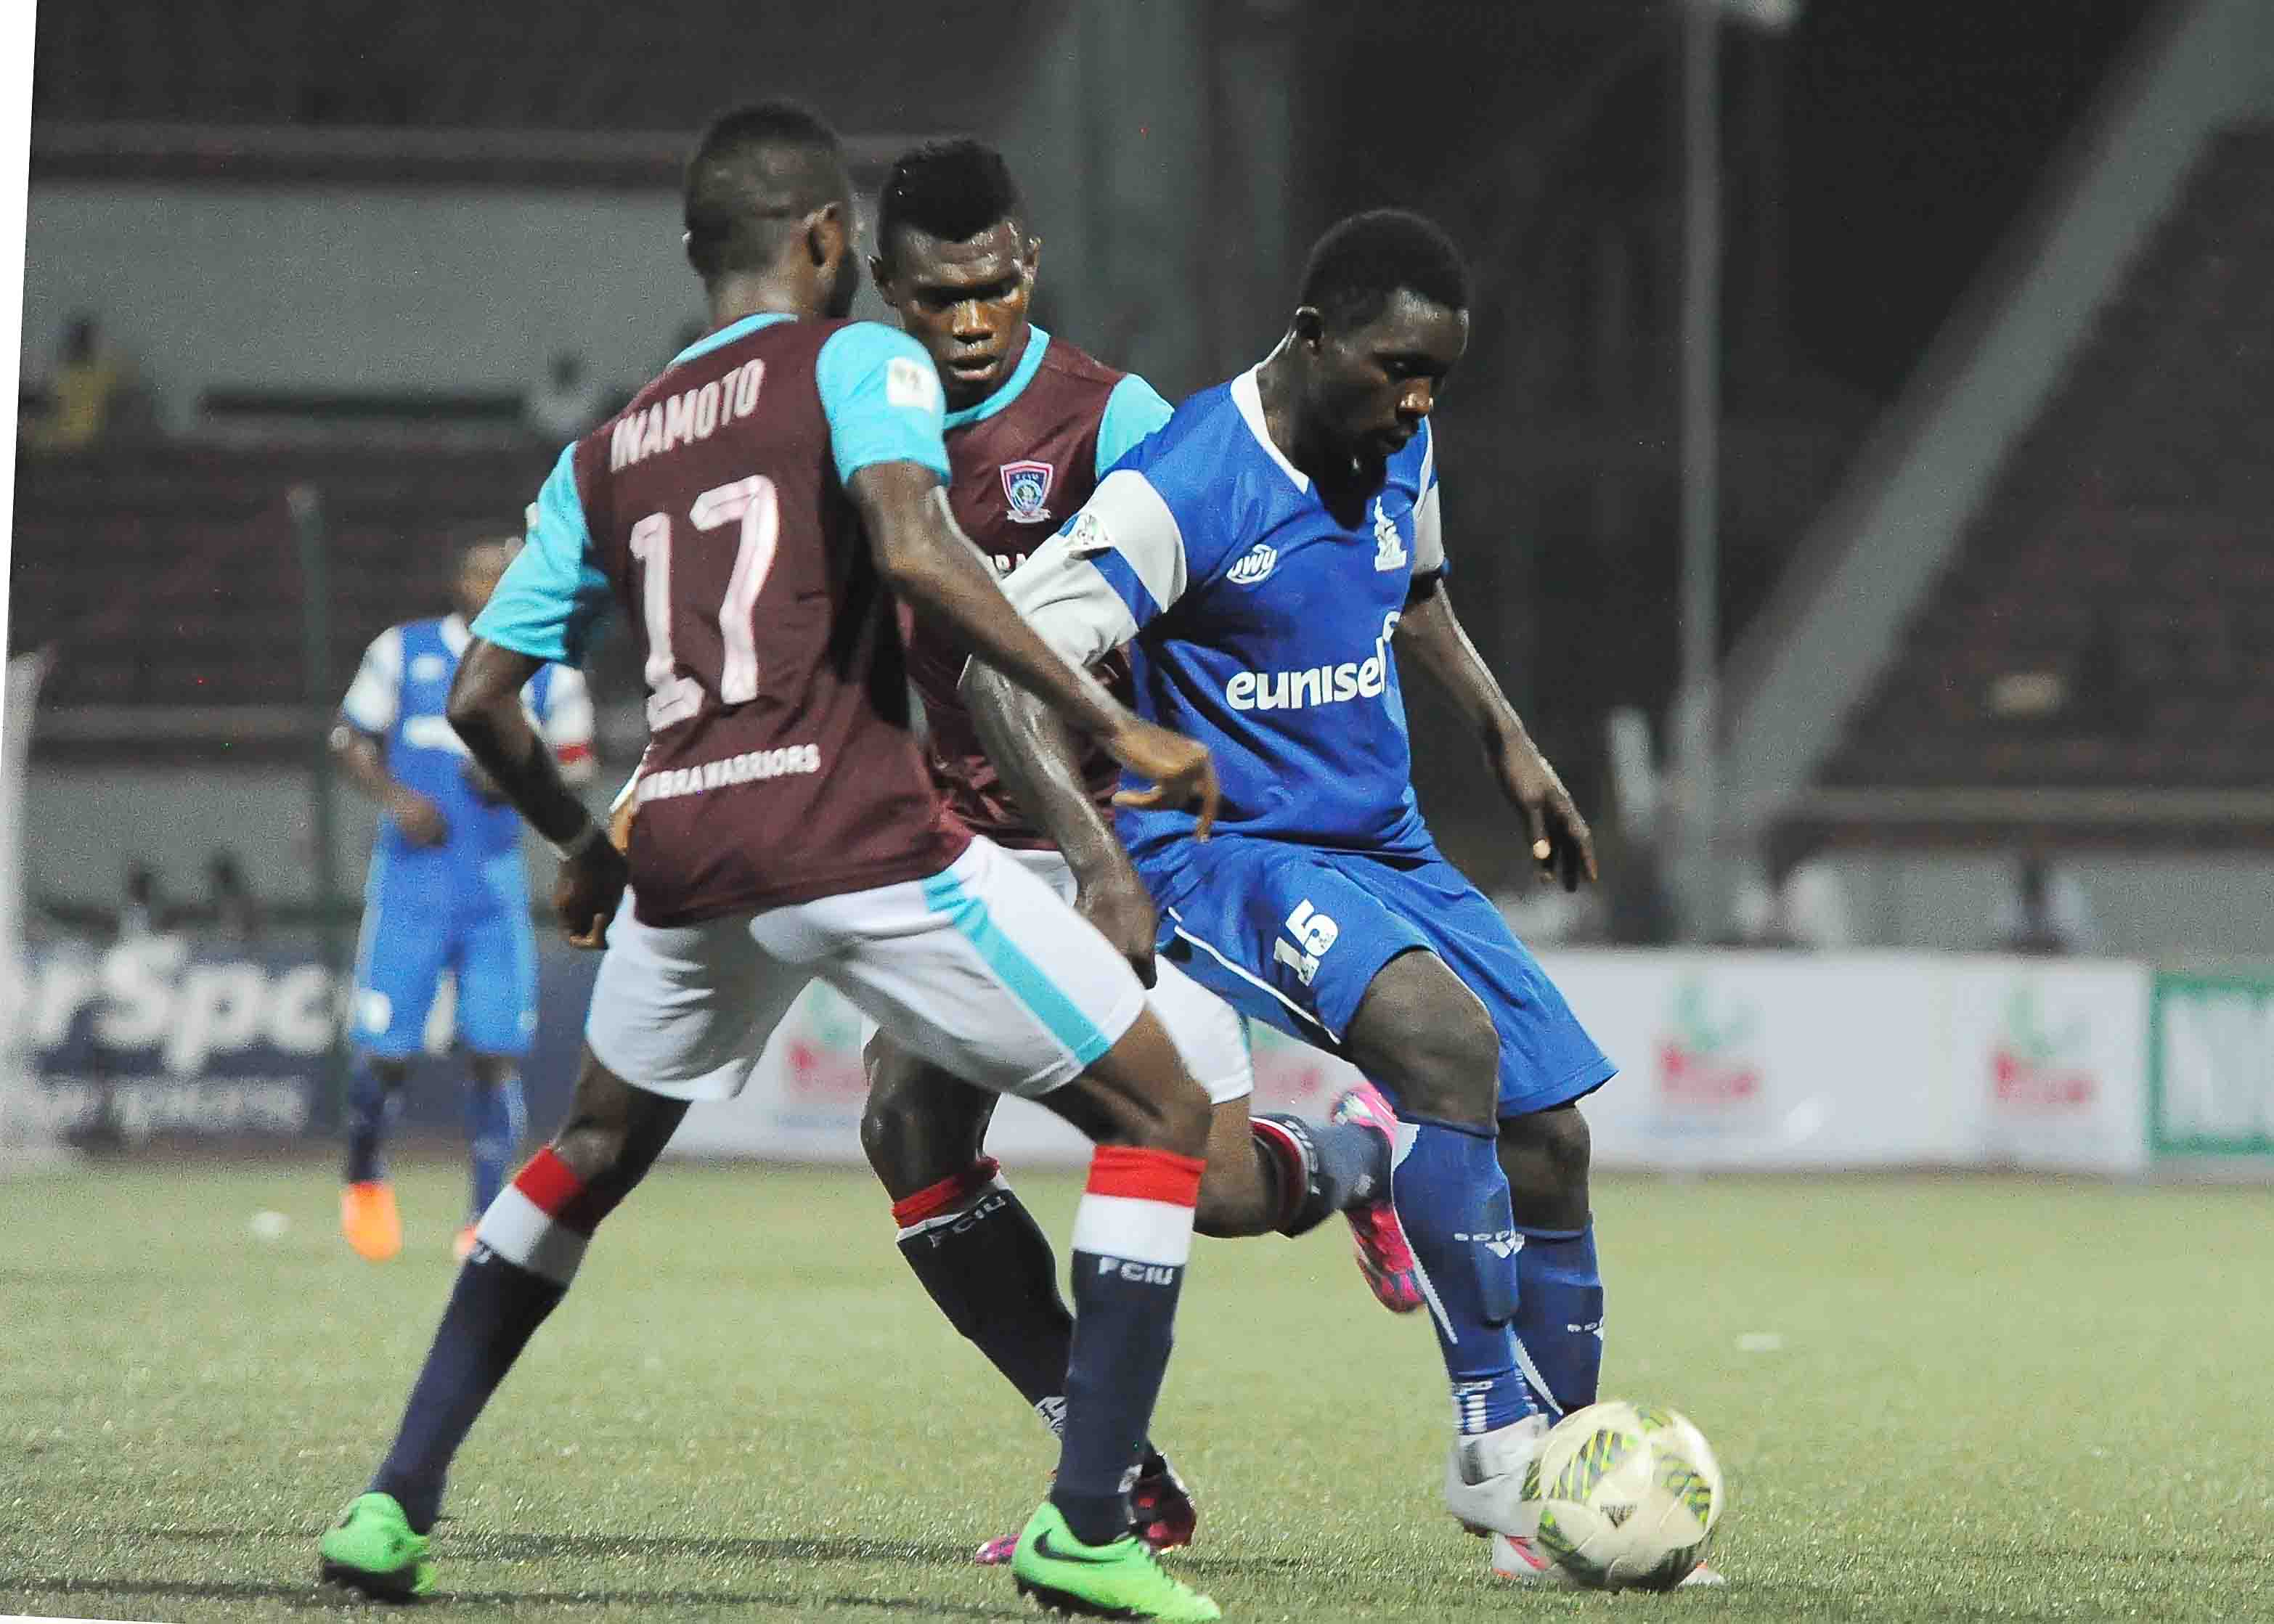 NPFL: IfeanyiUbah, Rangers Light Up Nnewi; 3SC Face Rivers United Test